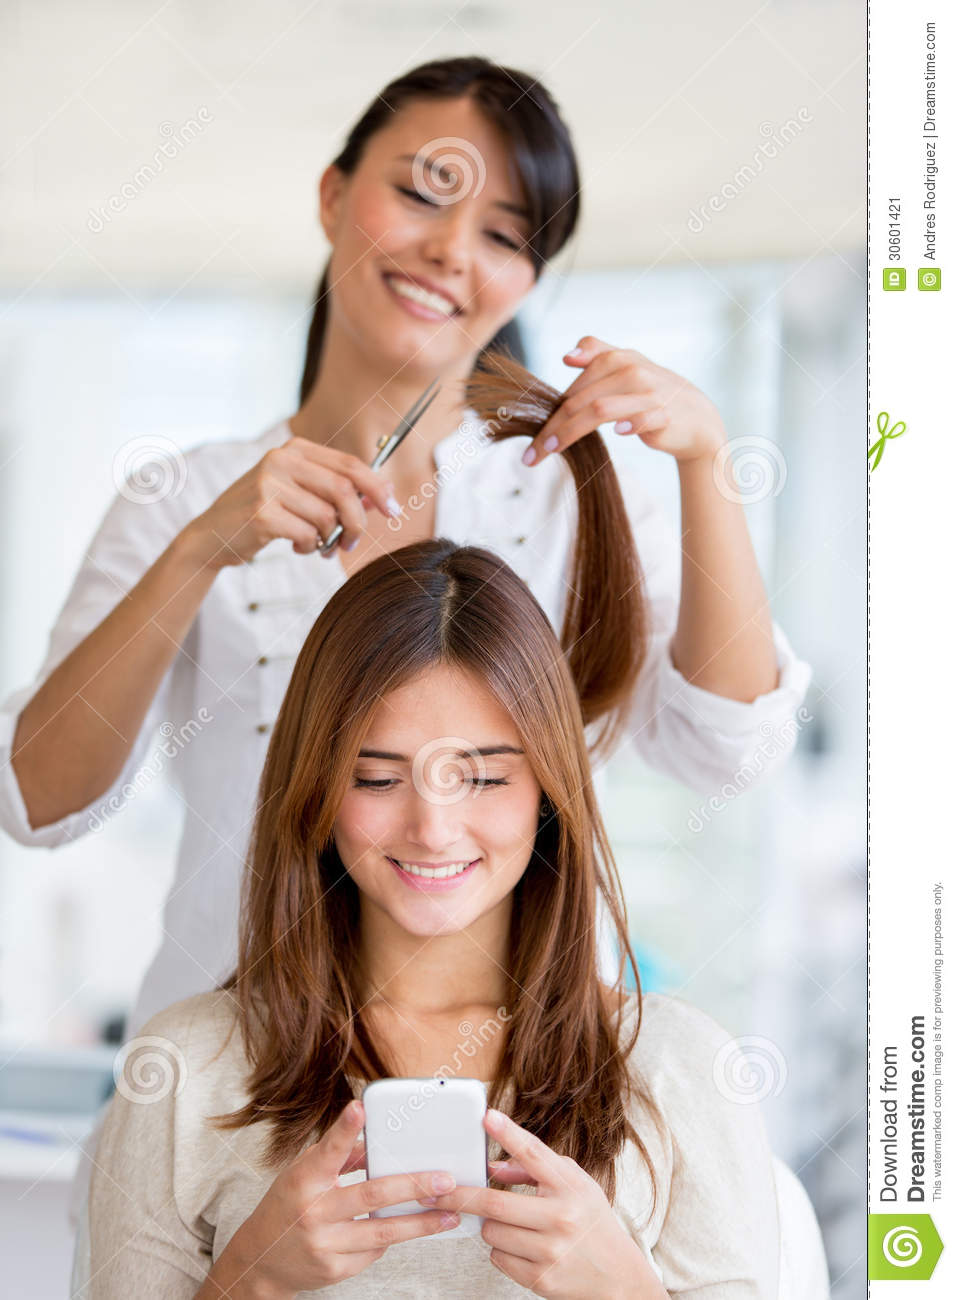 Girl getting a haircut stock image image 30601421 for A beautiful you salon